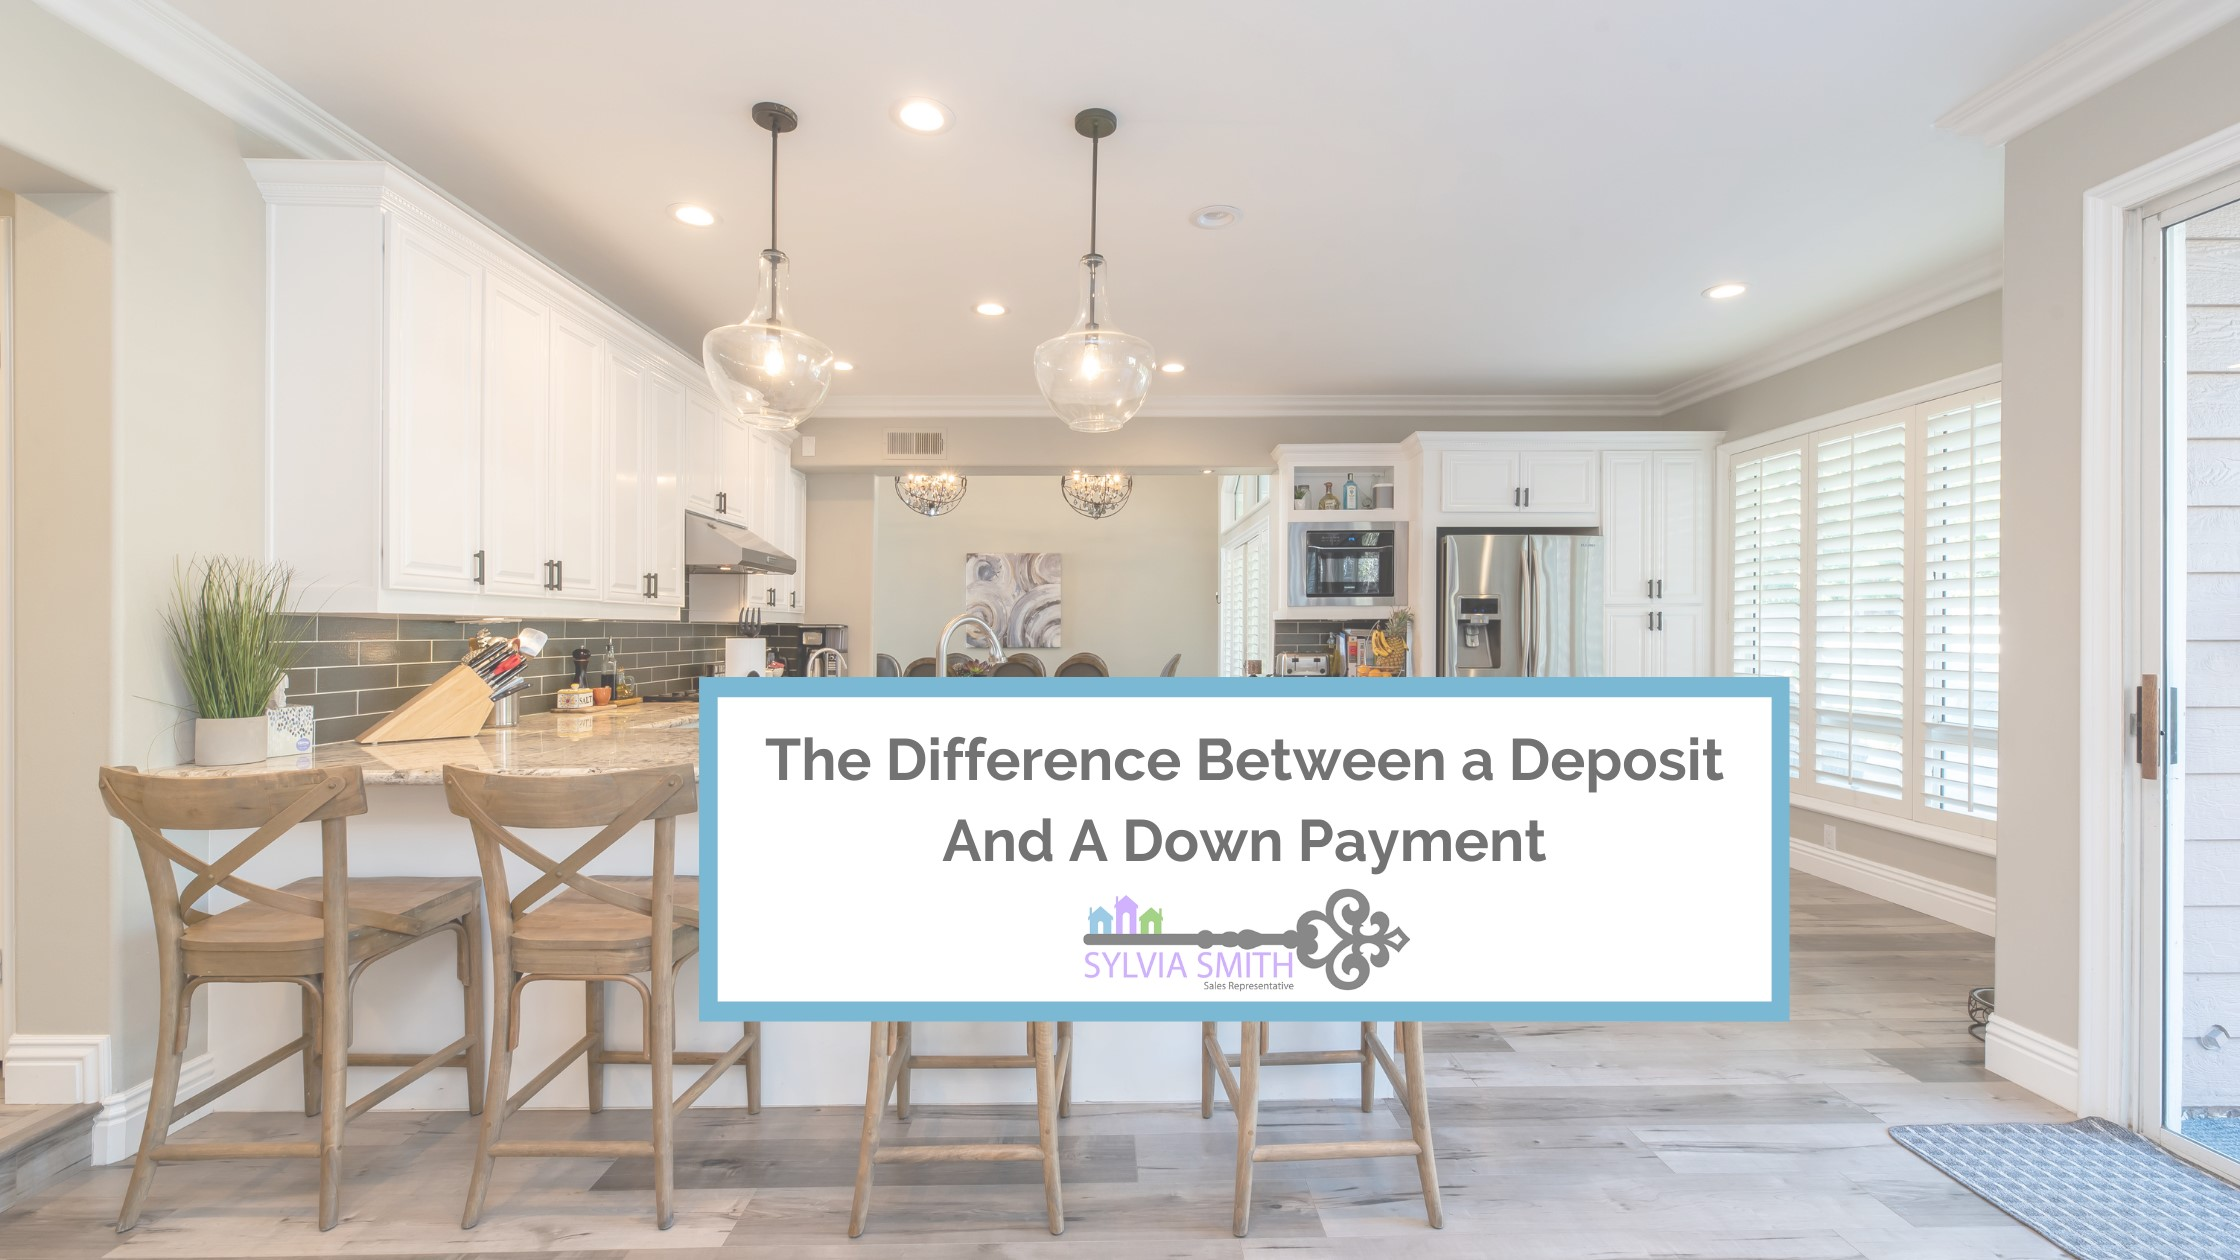 The Difference Between Deposit and Down Payment